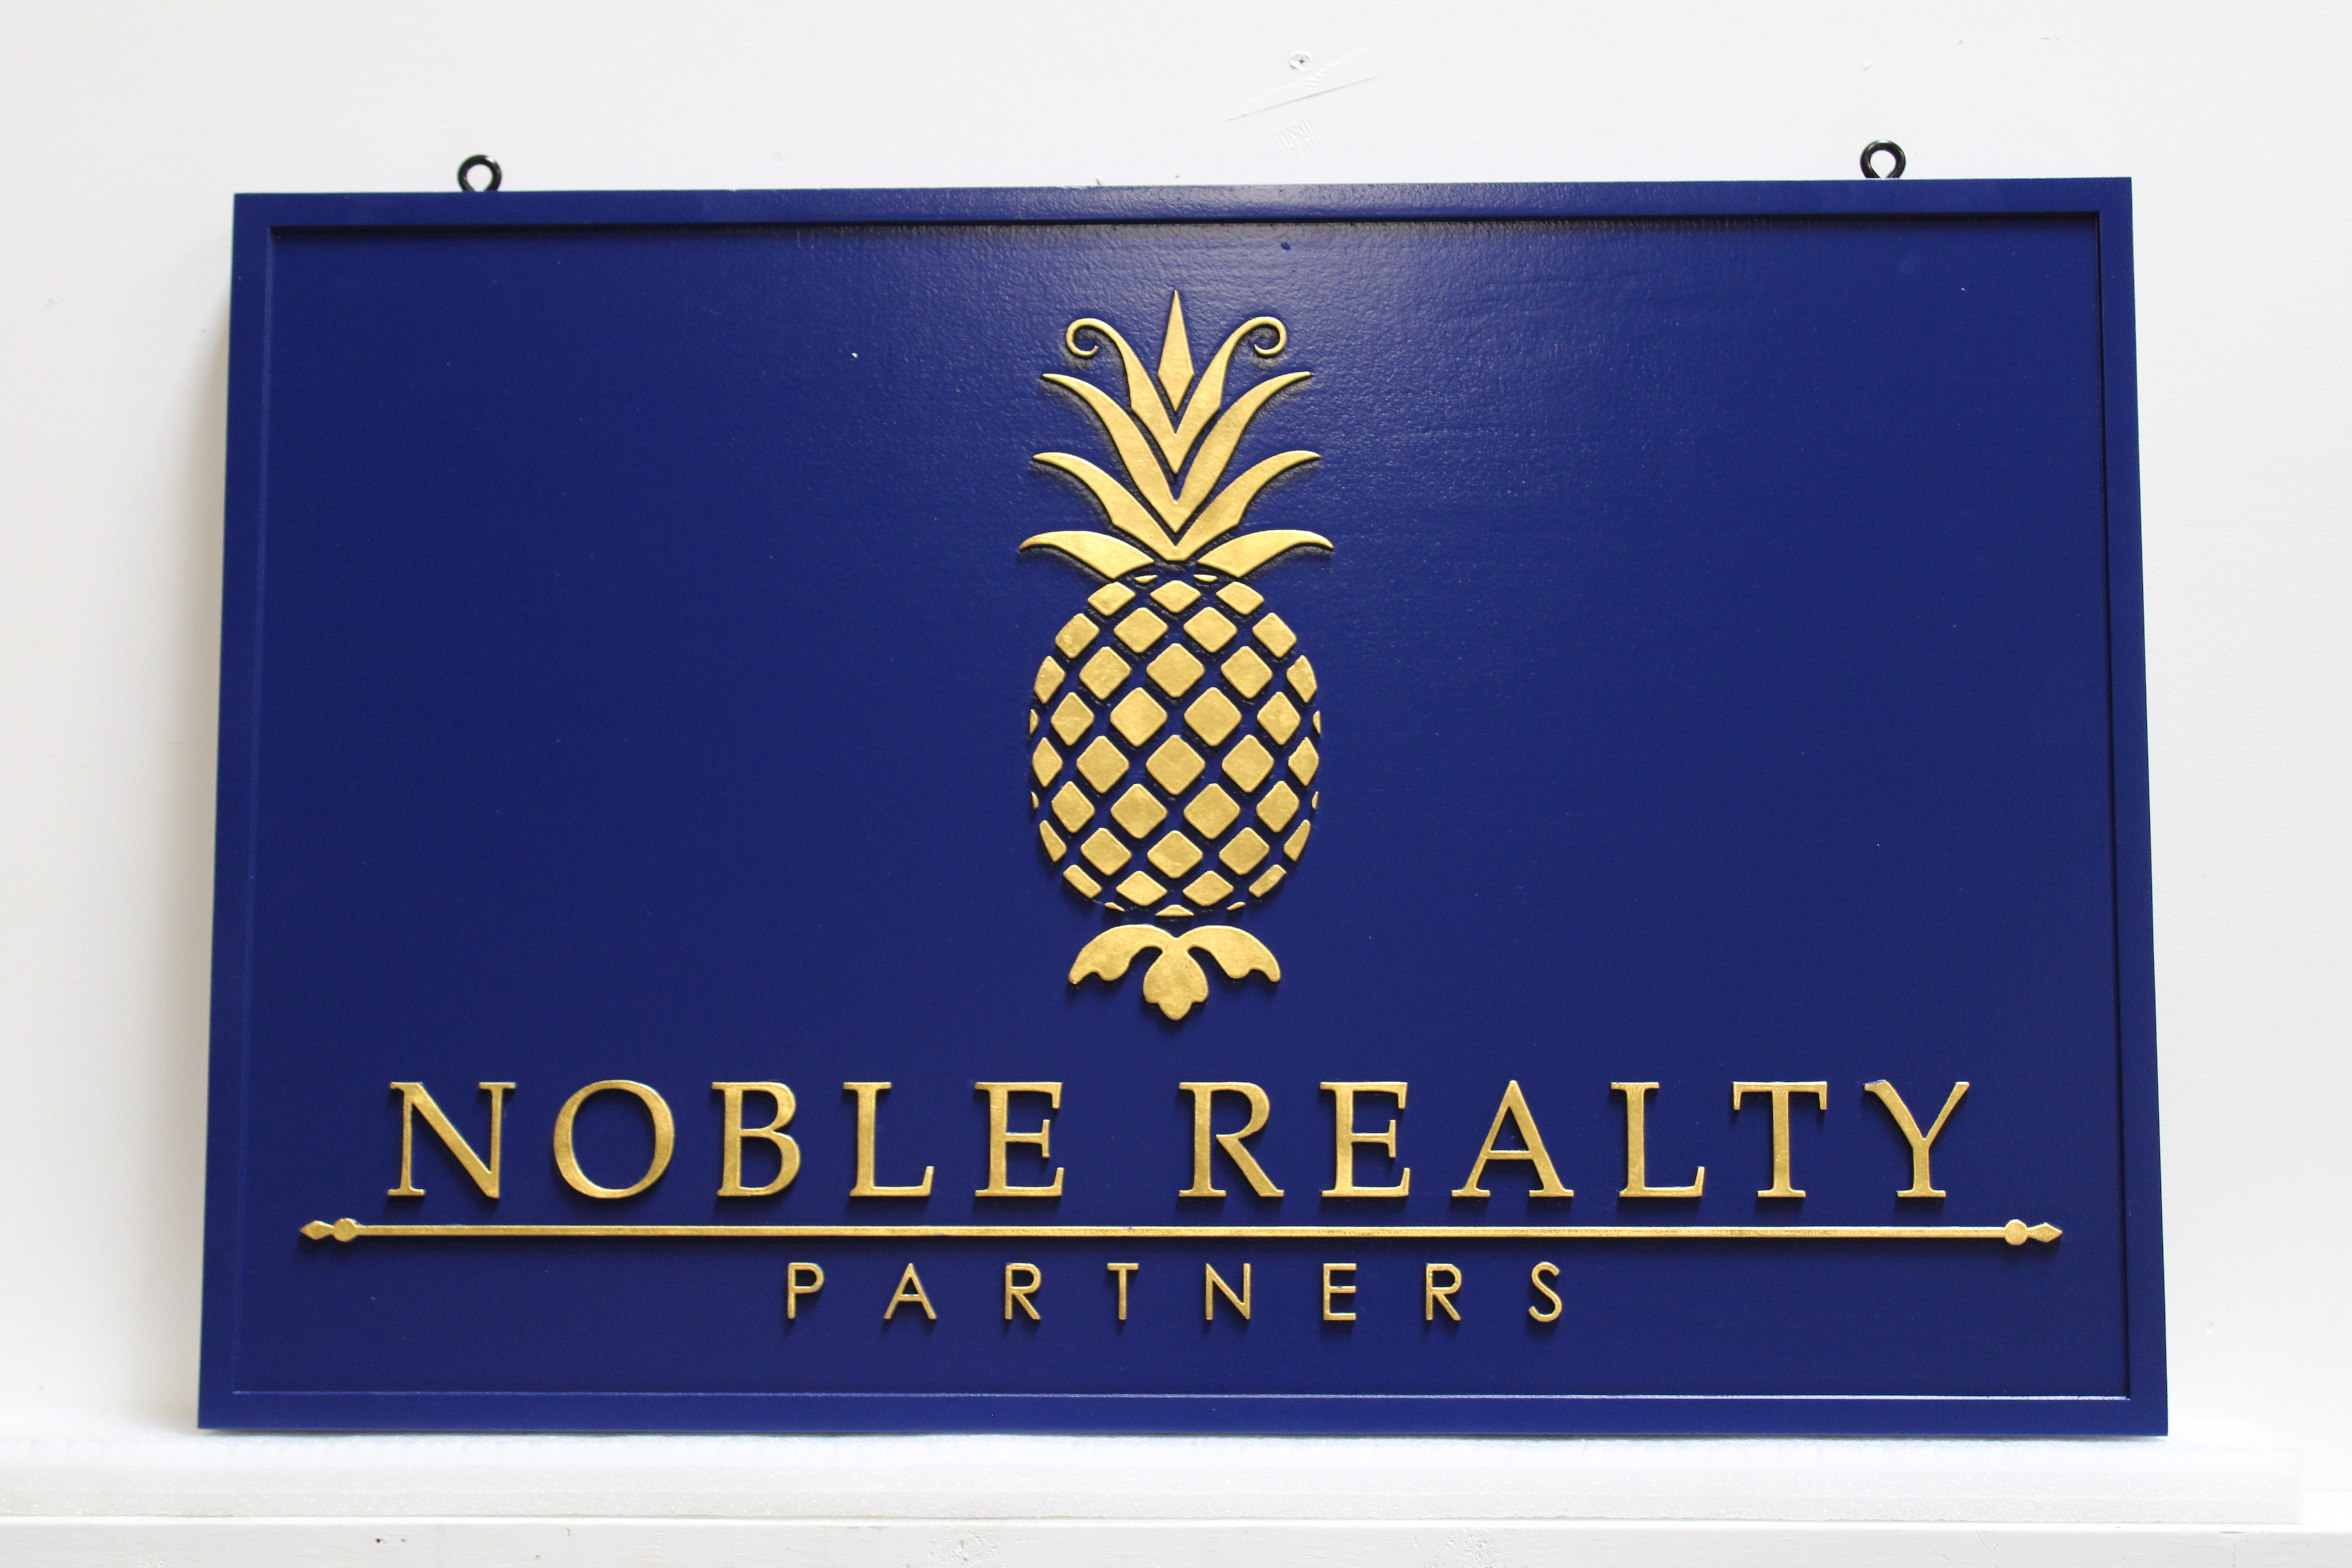 C12288 - Carved 24K Gold-Leaf Gilded  Raised Text and Pineapple  Sign for the Noble Realty Partners